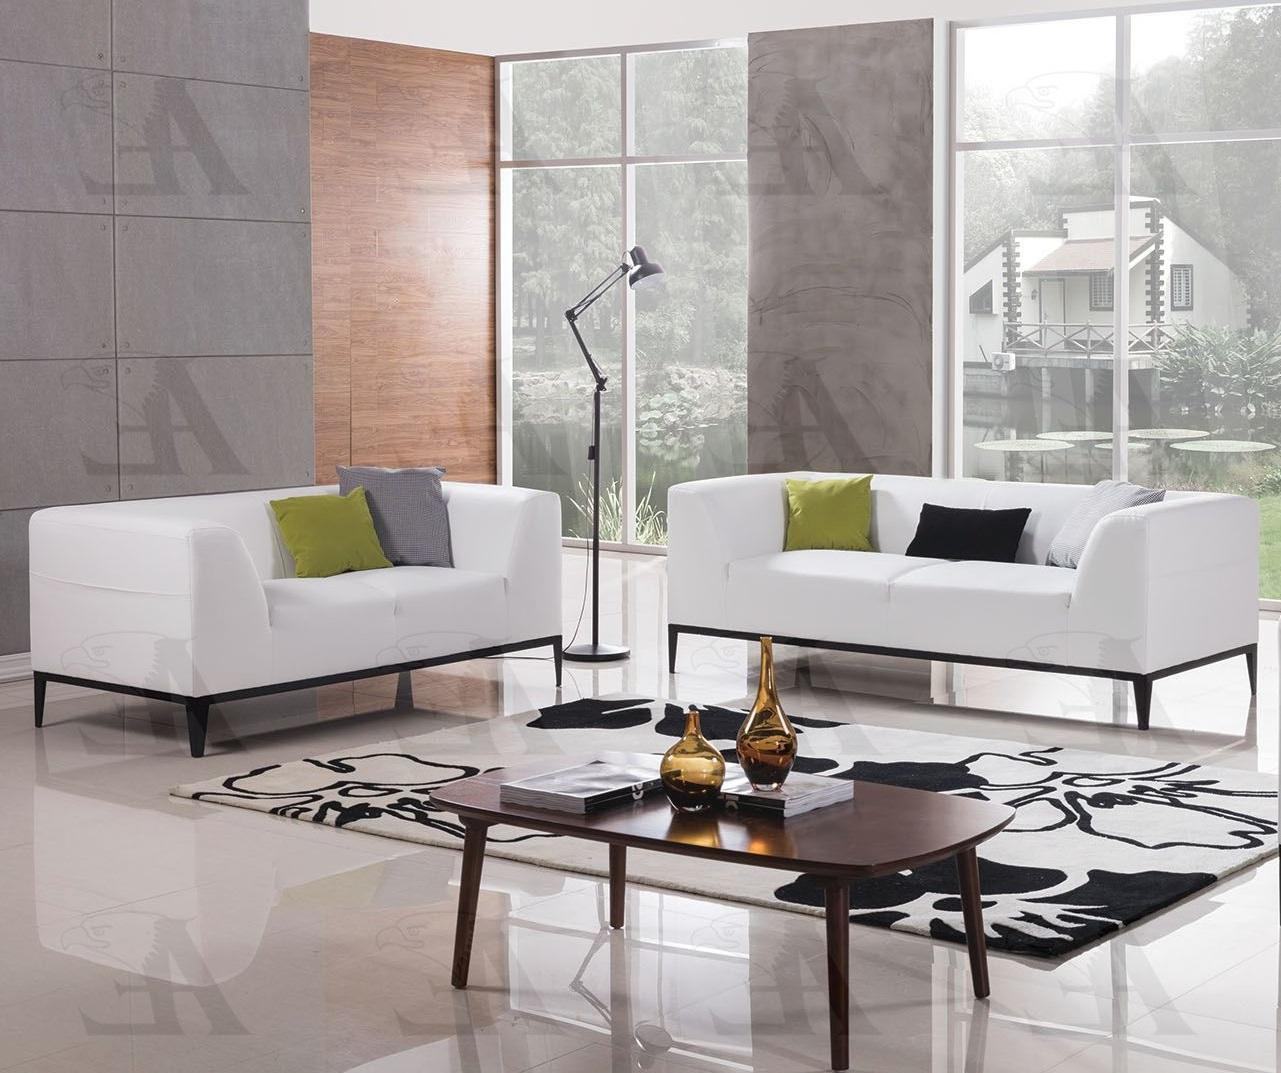 American Eagle AE-D820 White Faux Leather Modern Style Living Room Sofa Set 2pcs